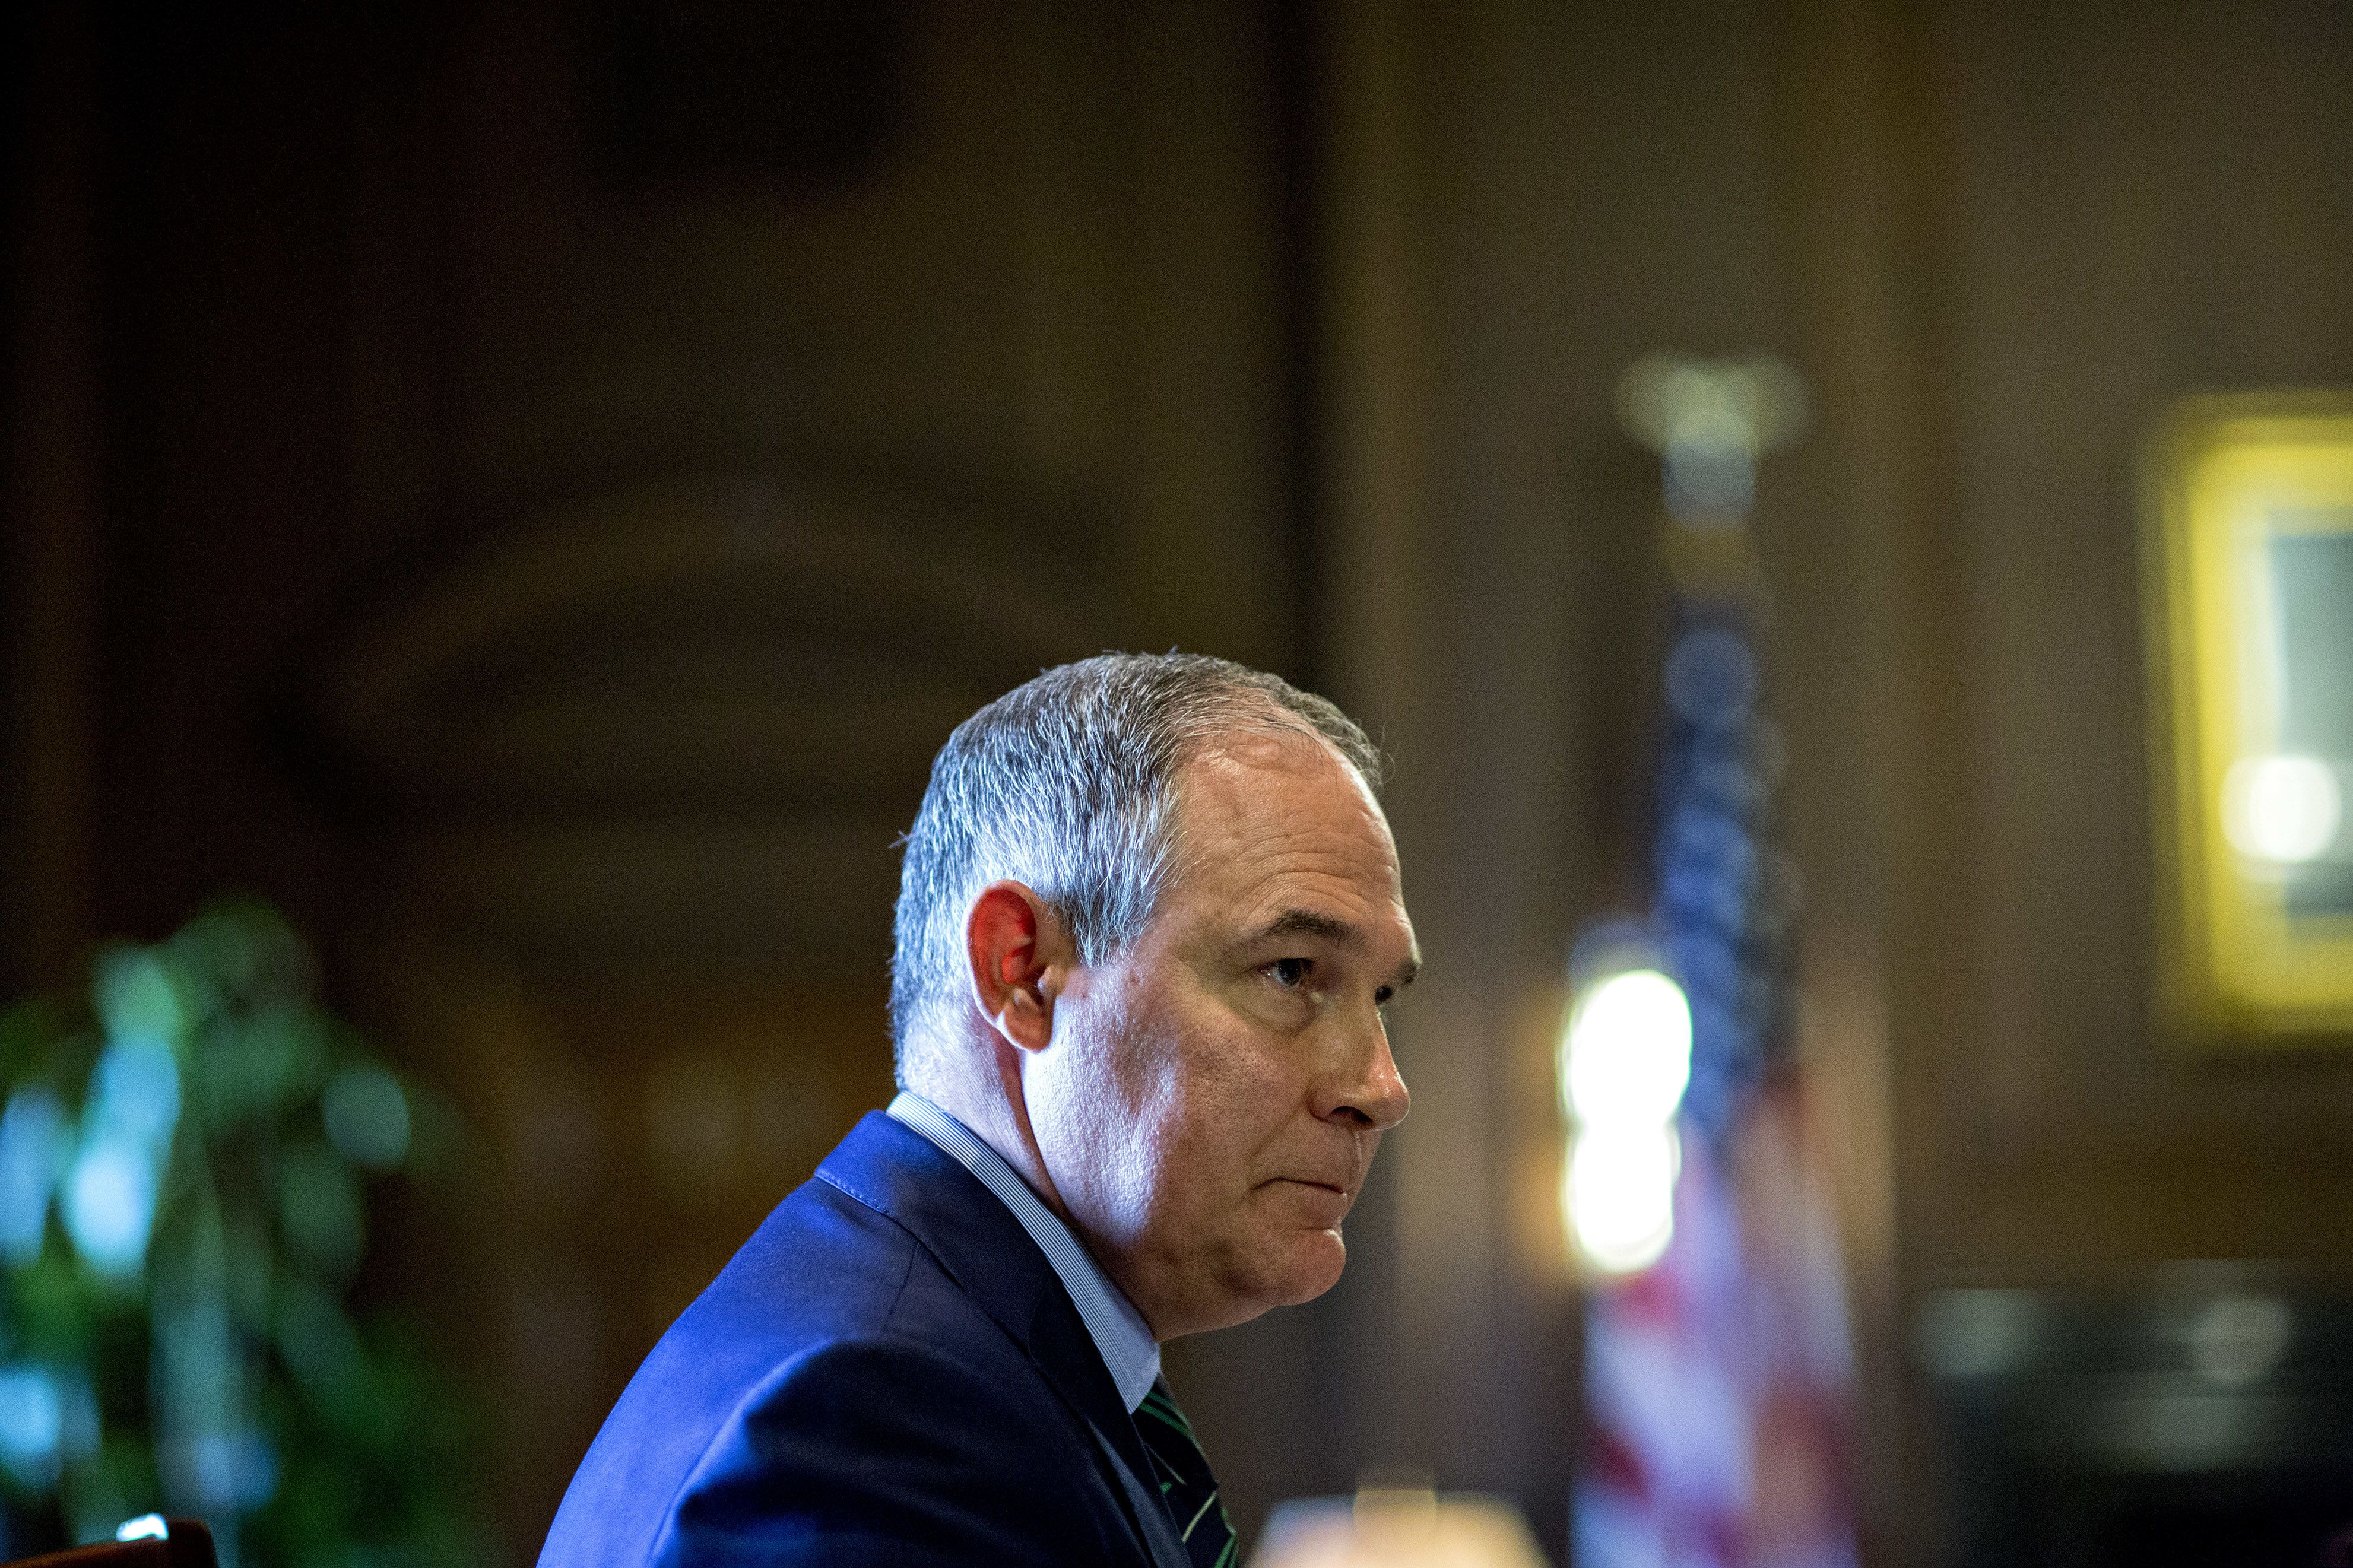 Scott Pruitt, administrator of the Environmental Protection Agency (EPA), pauses while speaking during an interview in his office at the EPA headquarters in Washington, D.C., U.S., on Wednesday, Oct. 25, 2017. Pruitt vowed that he will get tough on corporate polluters, dismissing critics who cast him as too cozy with industry. Photographer: Andrew Harrer/Bloomberg via Getty Images